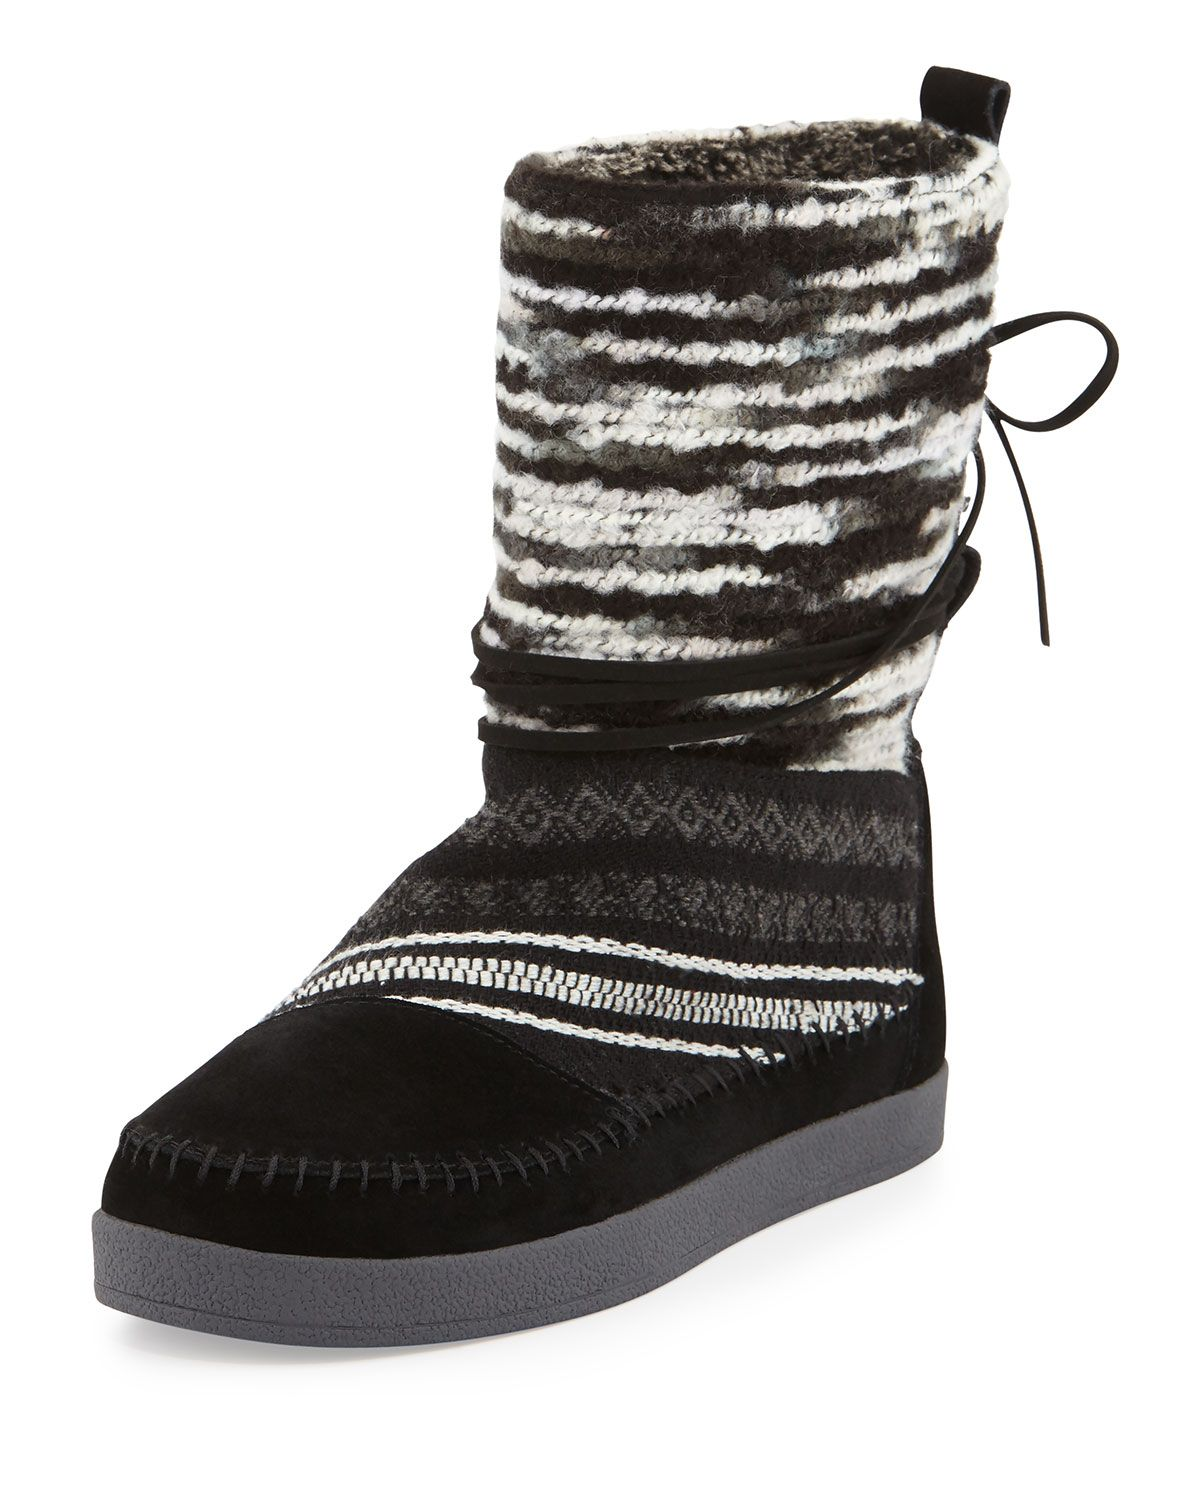 1836a45713d TOMS Nepal Striped Suede Boot, Black, Girl's, Size: 37.5B/7.5B ...